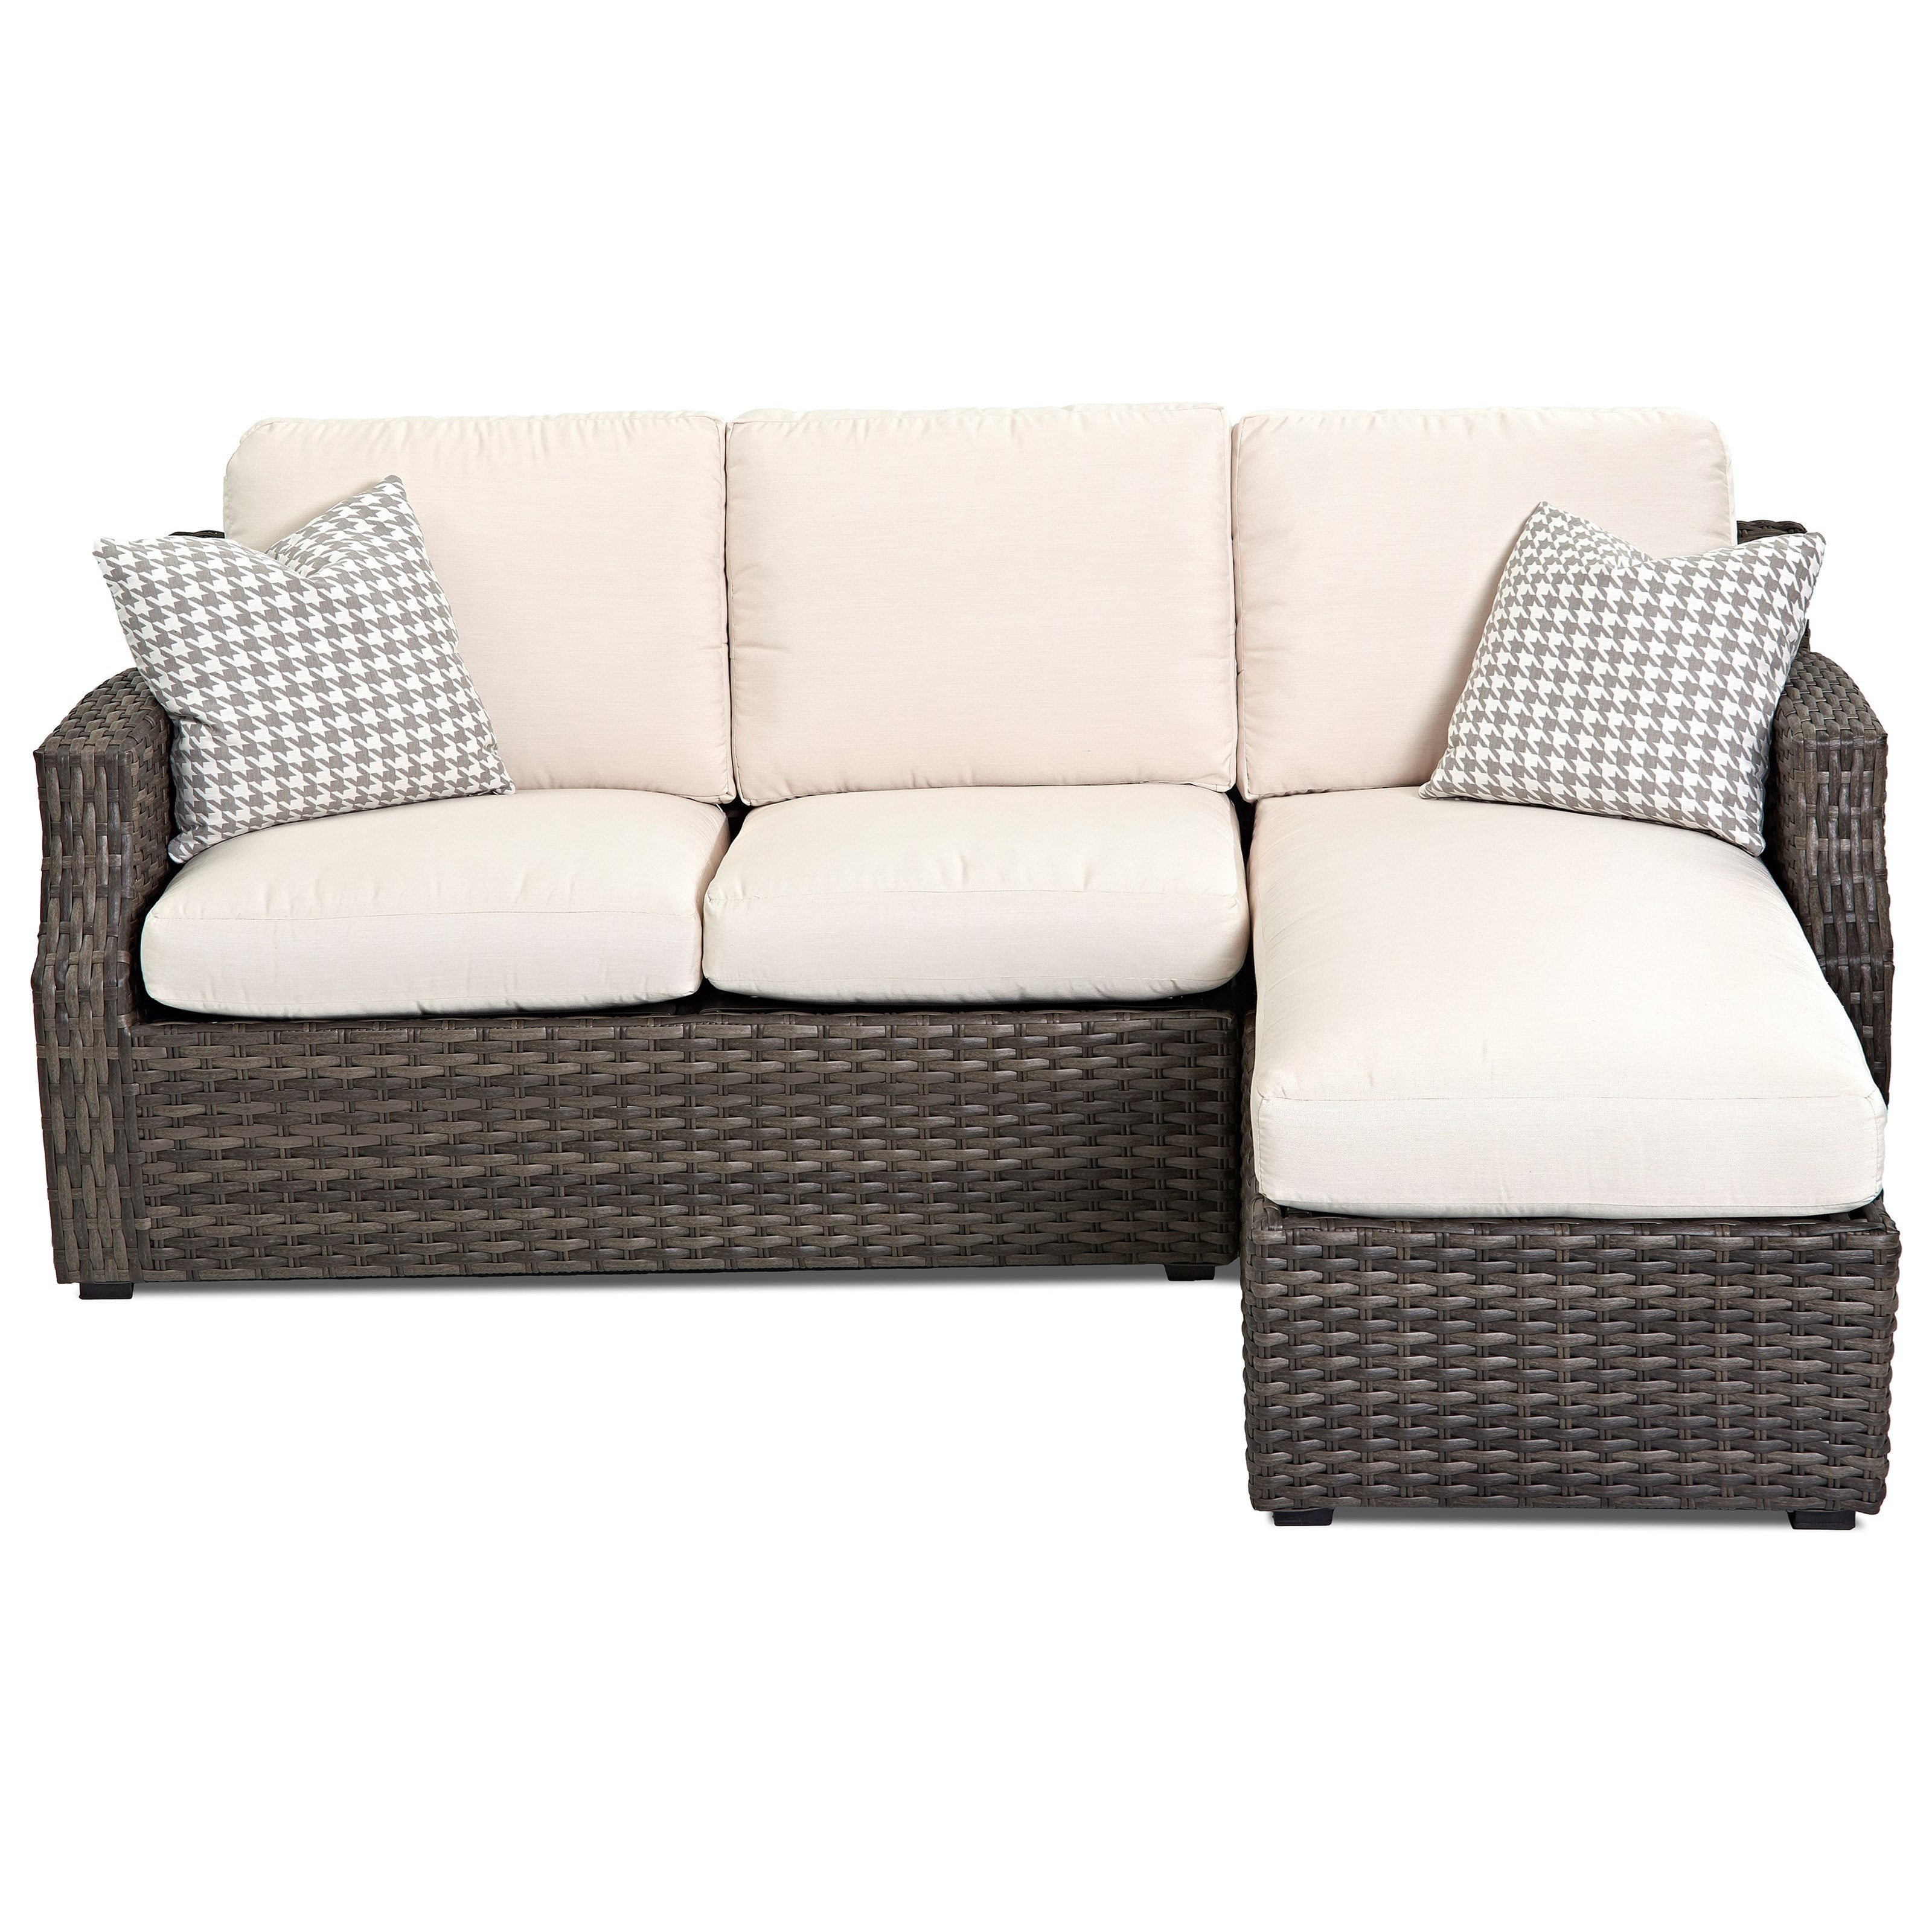 Klaussner Outdoor CascadeOutdoor Sectional Sofa (Drainable Cushion) ...